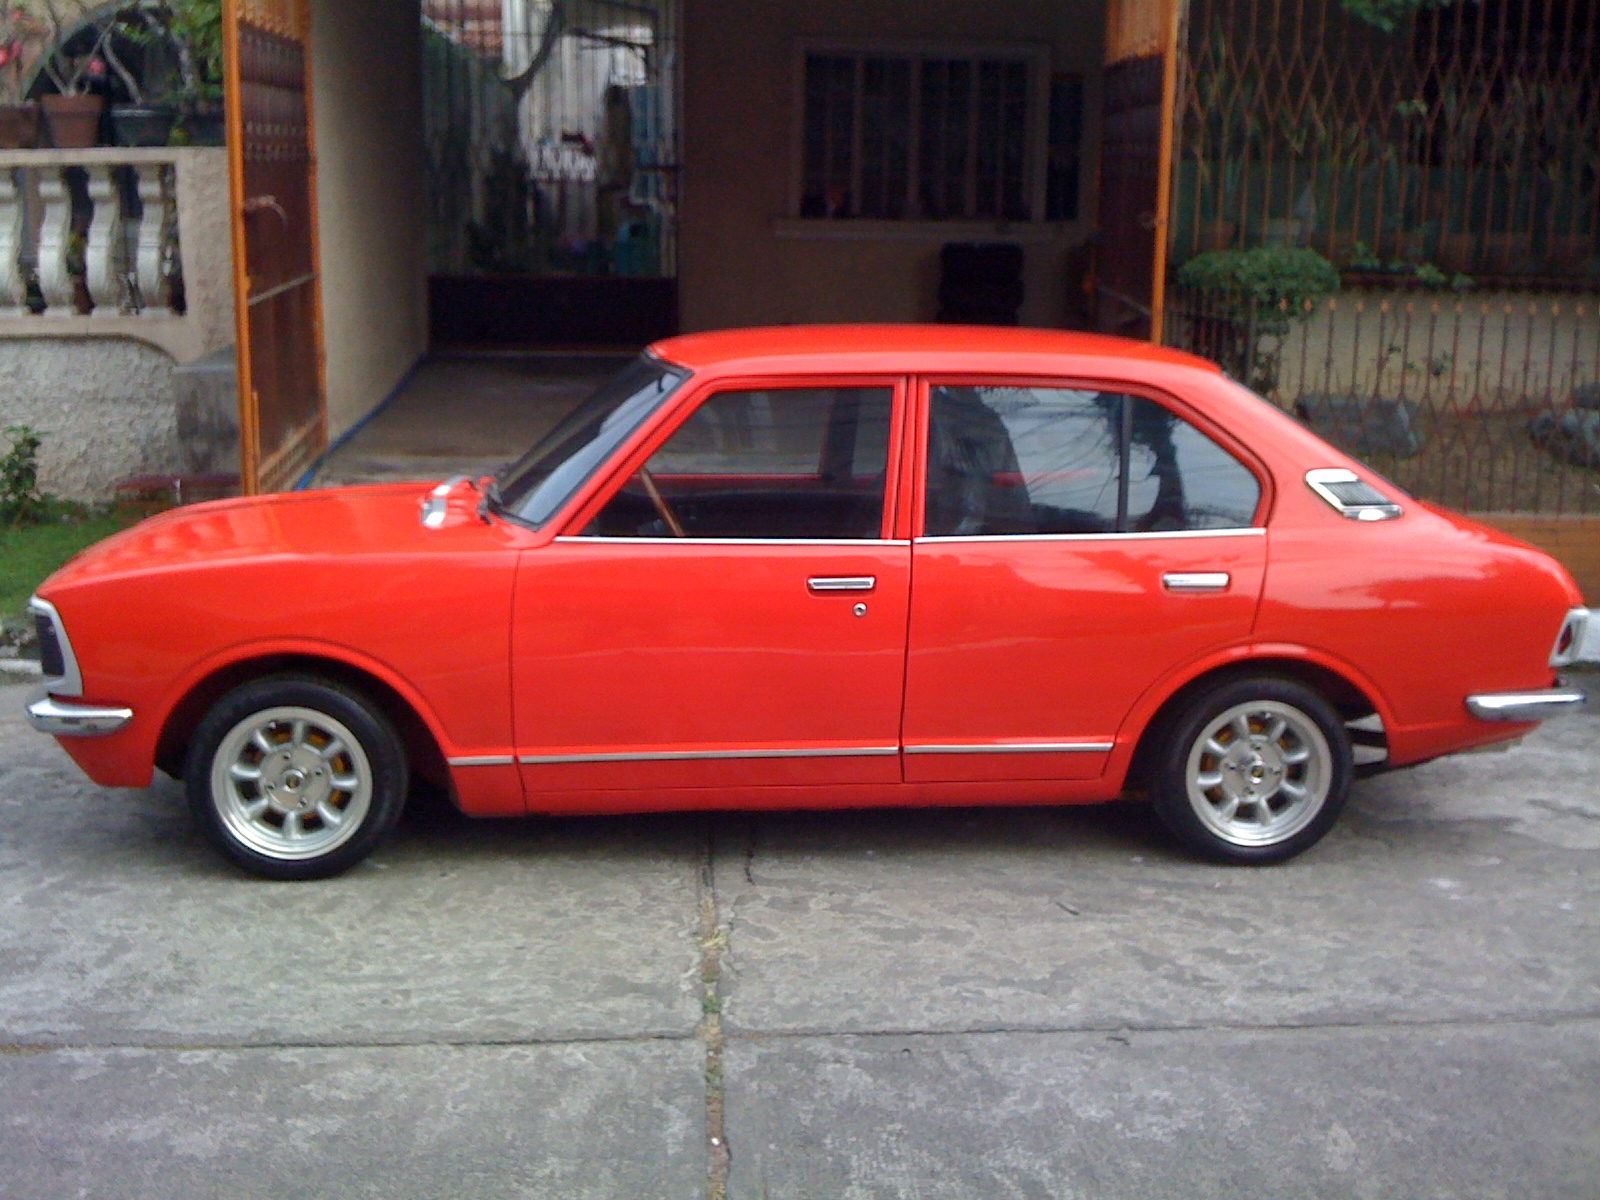 Mba H additionally Toyota Corolla E Sedan X in addition Toyota Carina Ta Similar To Celica Corolla Crown Corona furthermore Maxresdefault furthermore Valiant Rt Charger Front Angle. on 1972 toyota corolla